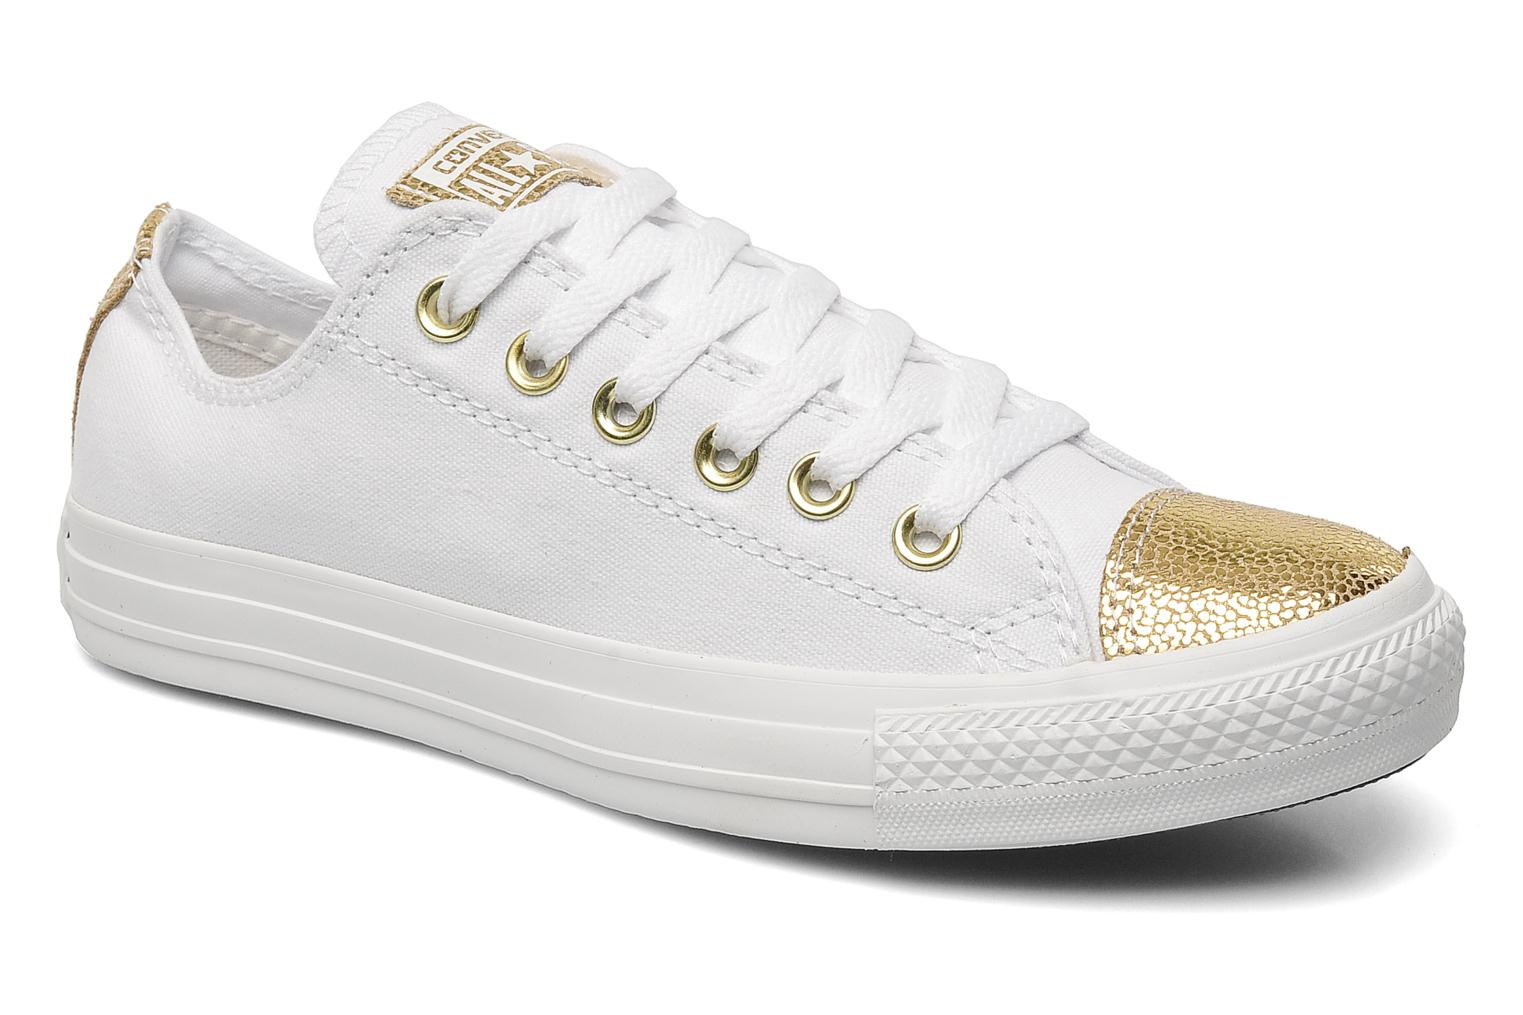 converse chuck taylor all star ox blanche et or